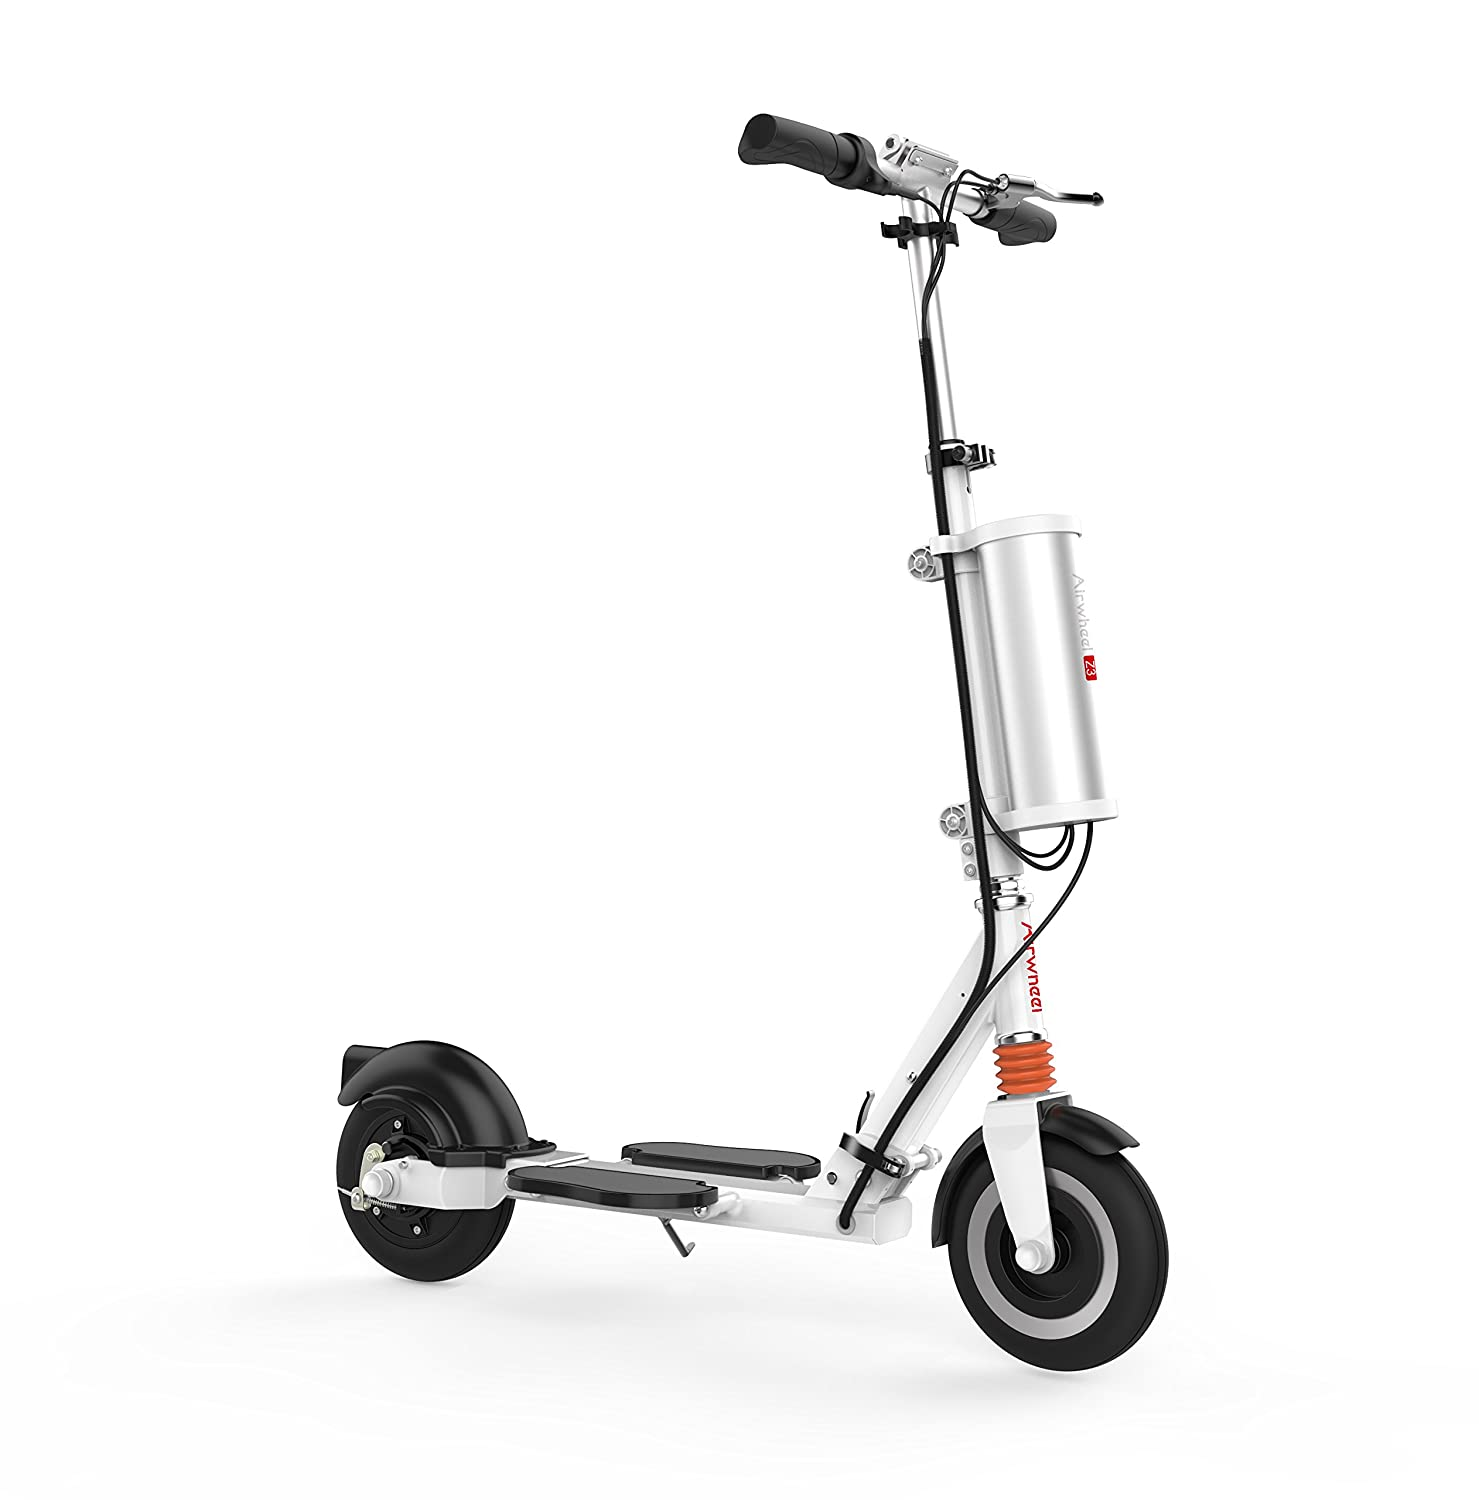 Airwheel Z3 Electric Scooter for Adults 163WH Foldable